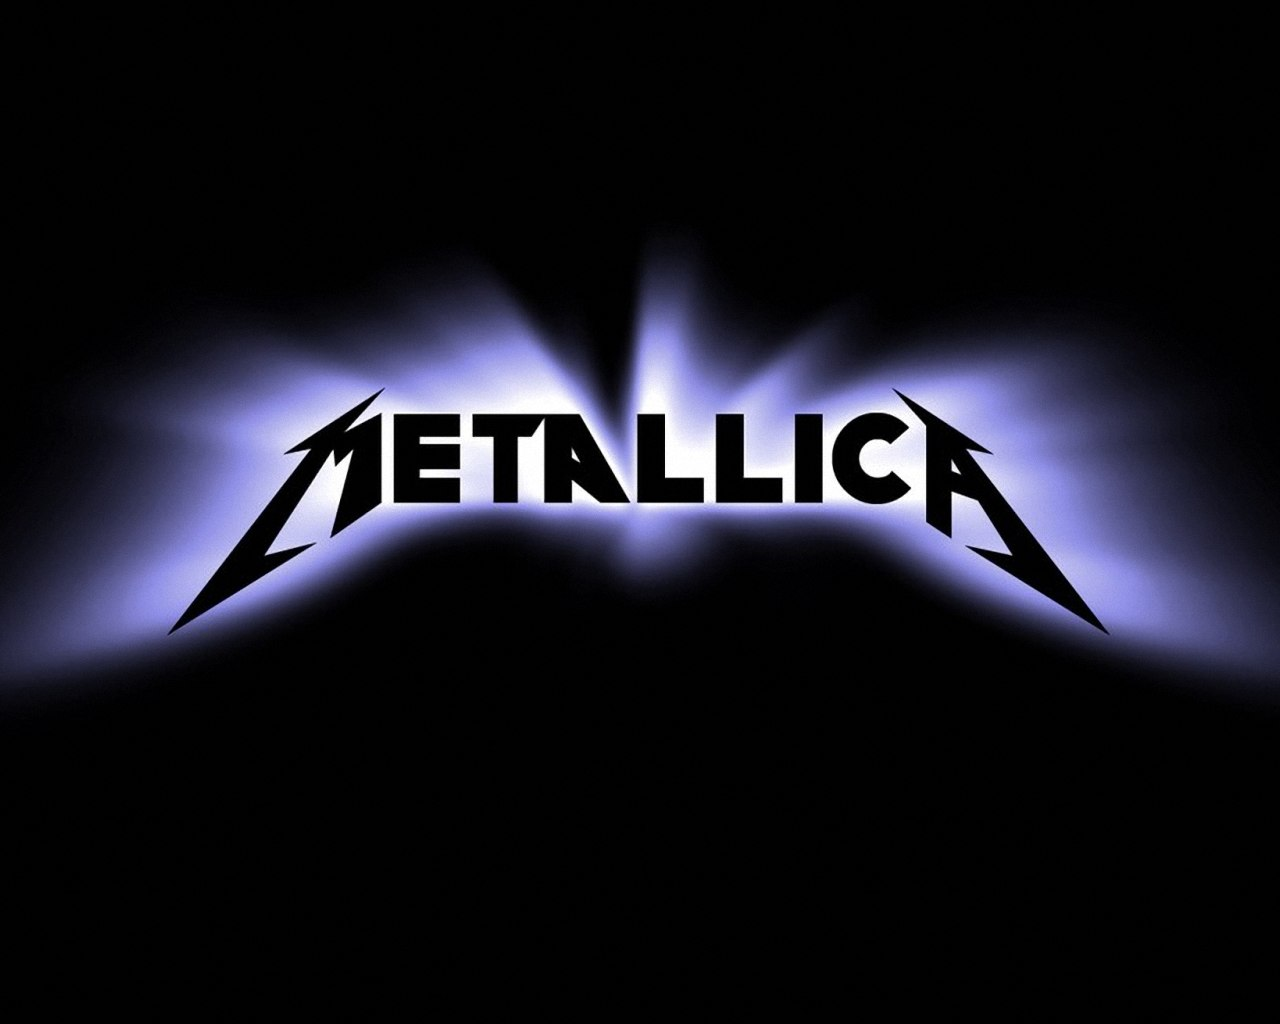 Metallica Wallpaper 1280x1024 Wallpapers 1280x1024 Wallpapers 1280x1024